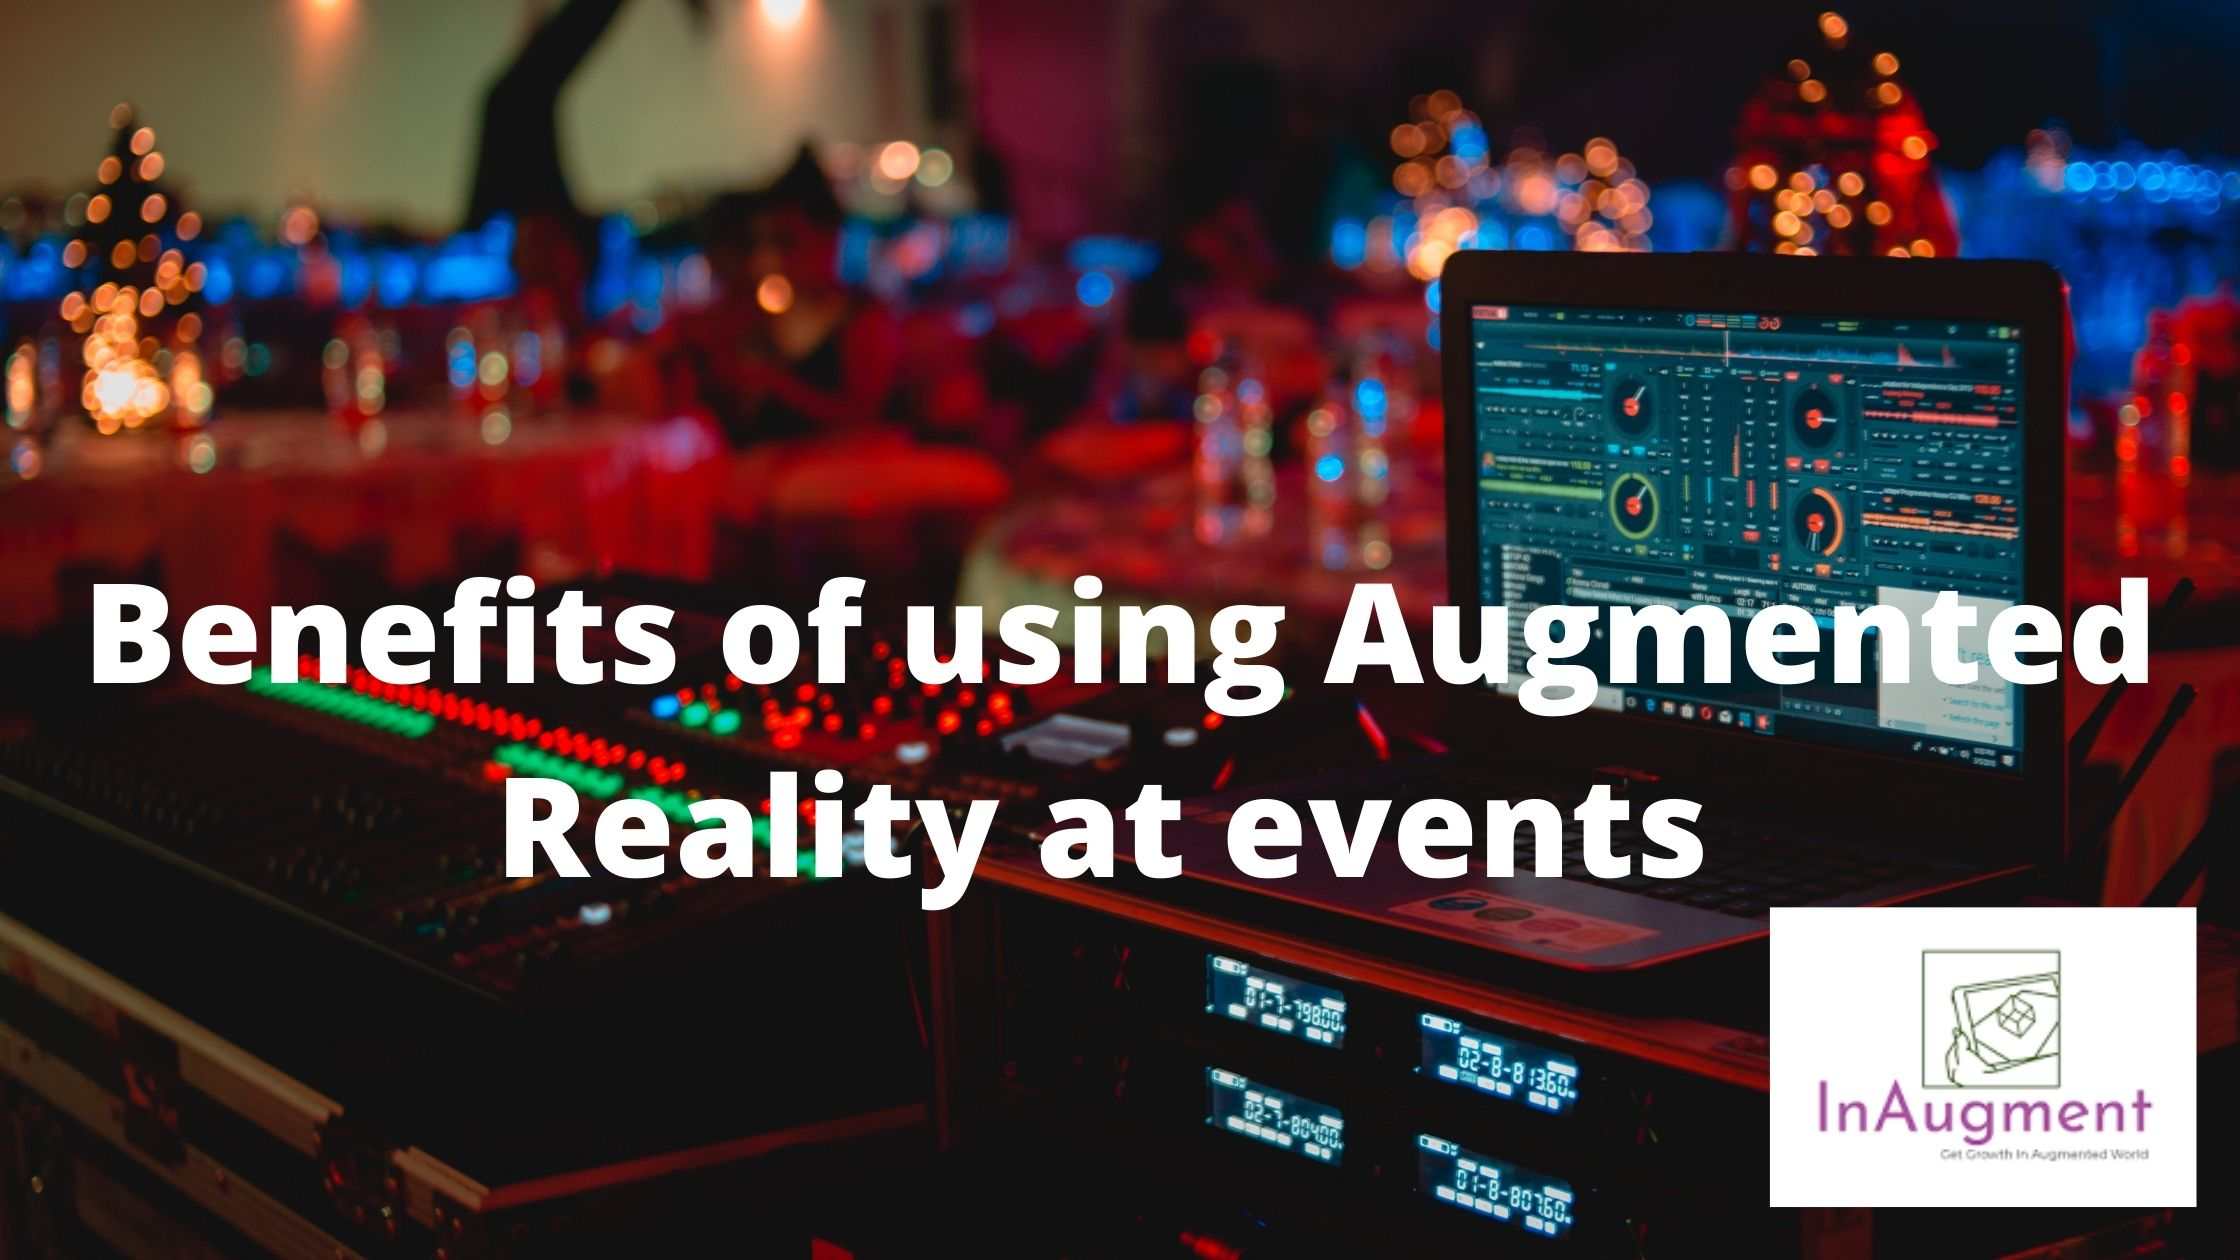 Augmented Reality at event